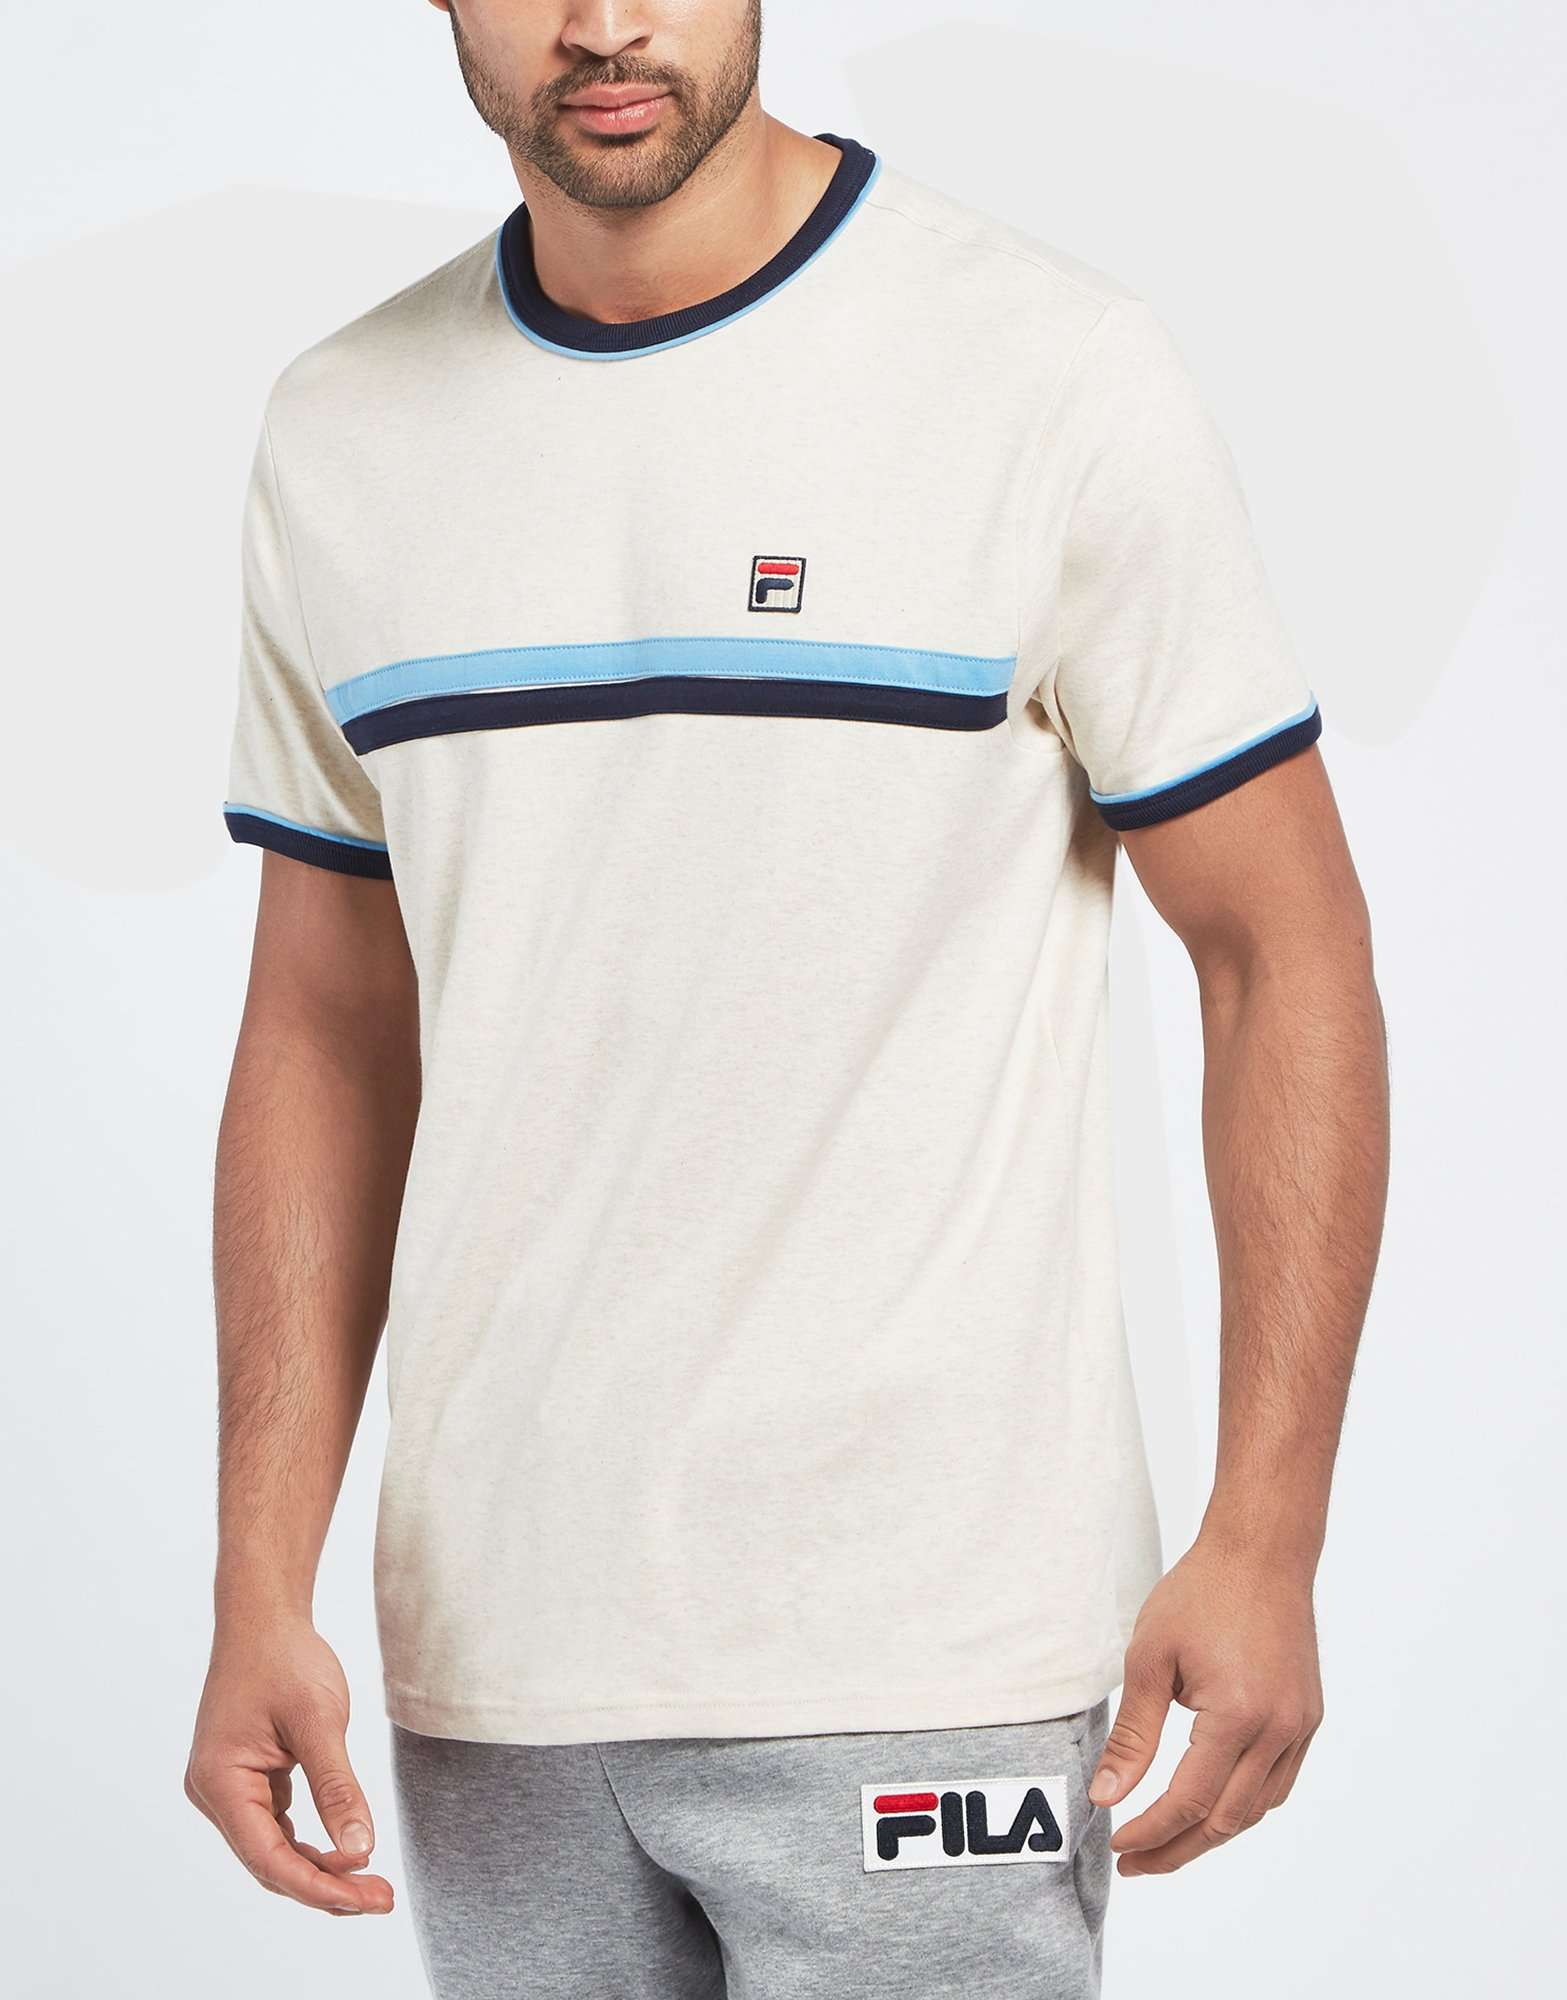 Fila Razee Short Sleeve T-Shirt - Online Exclusive